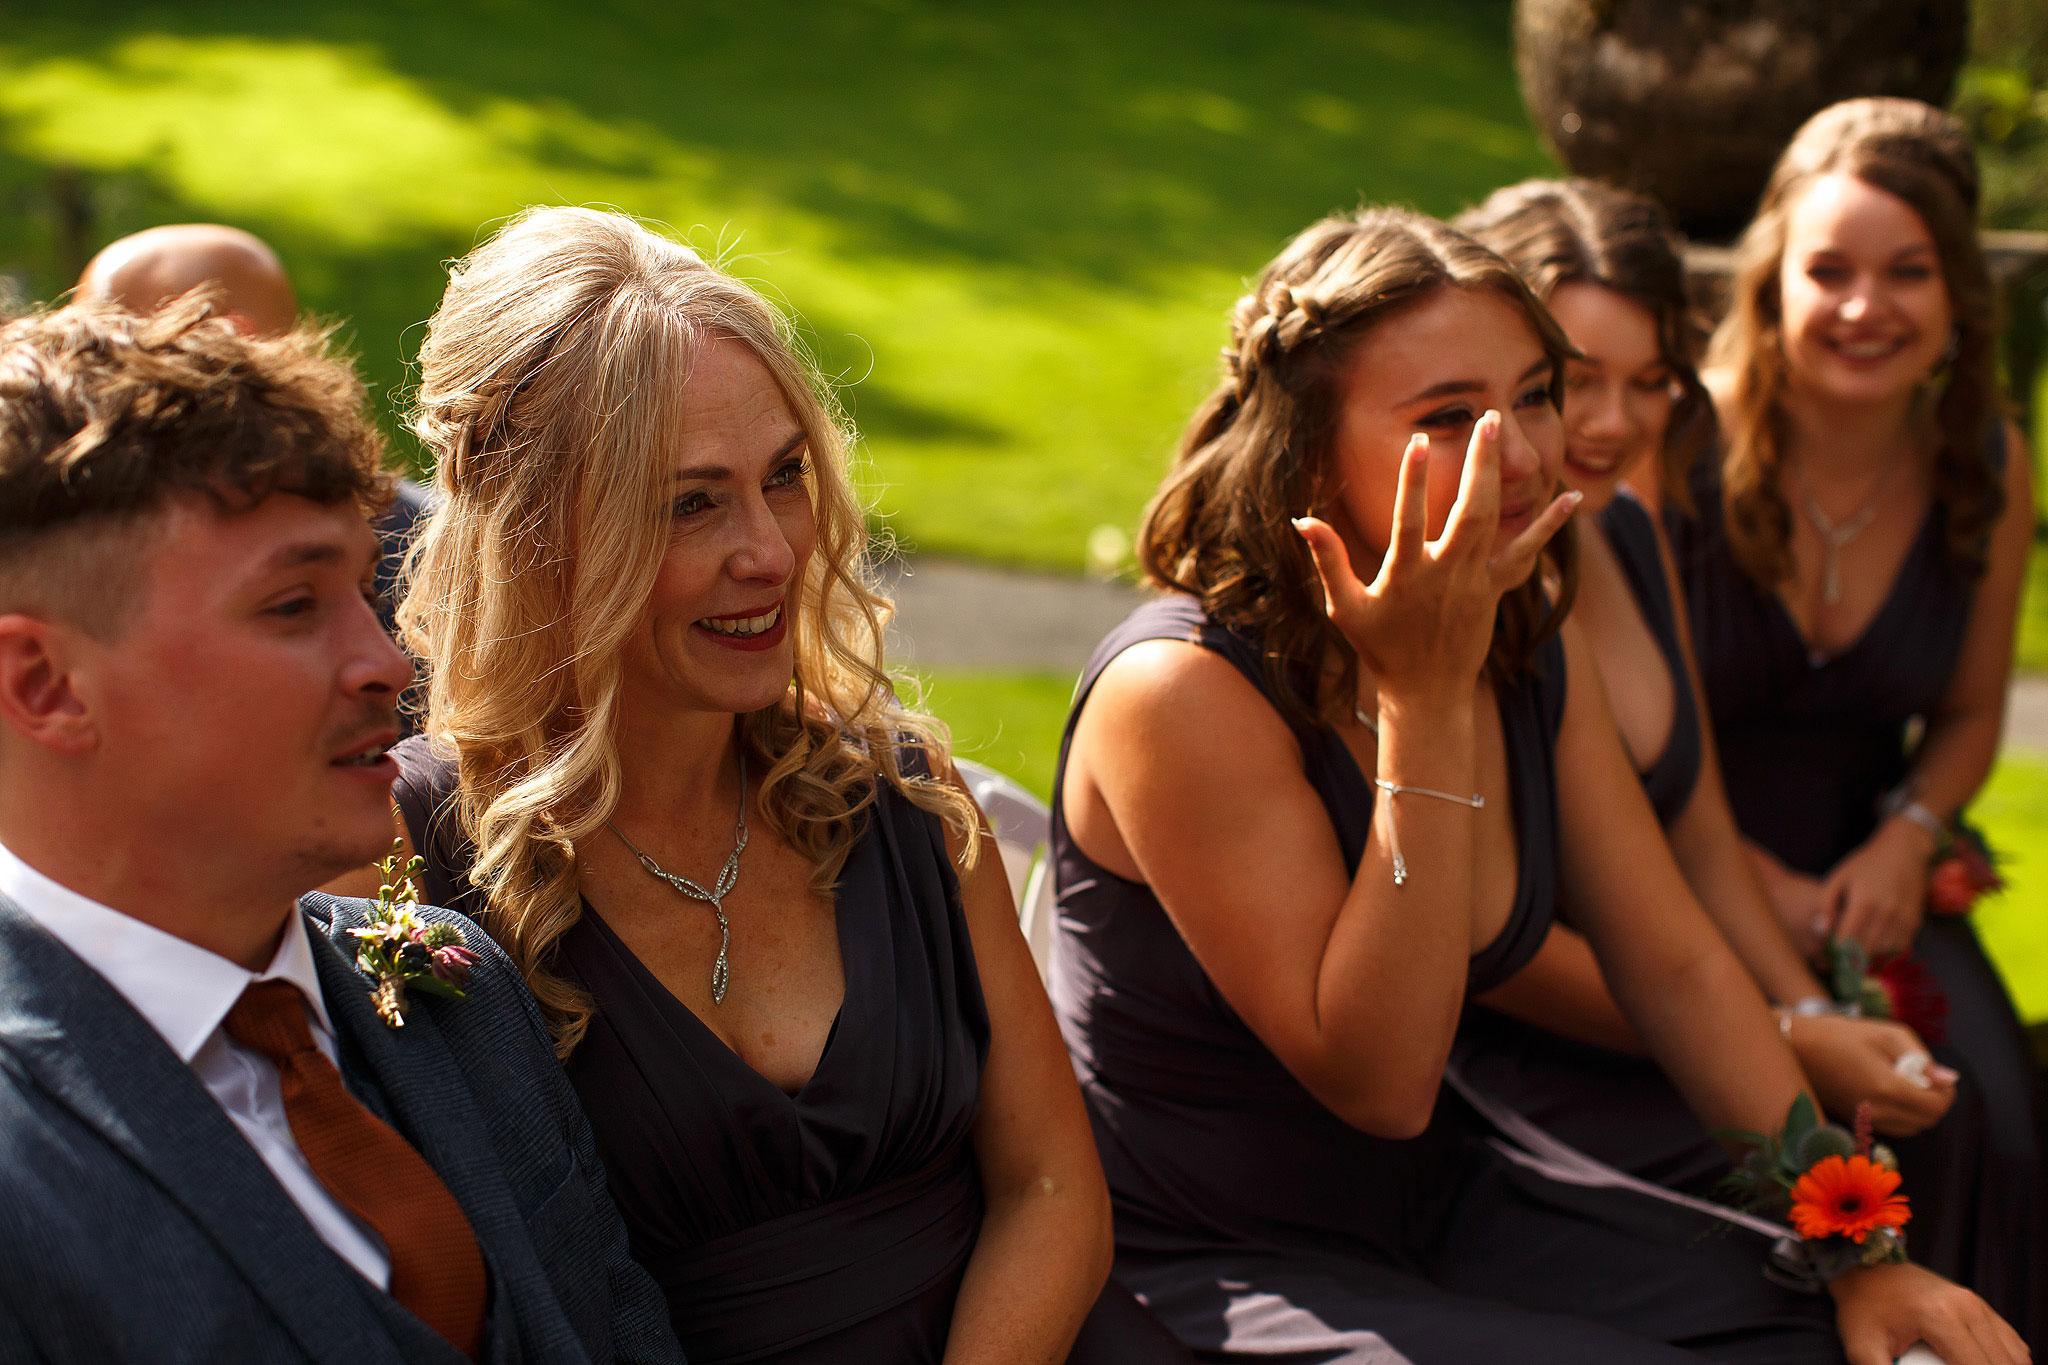 Bridesmaids looking emotional during outdor wedding ceremony | Hargate Hall Wedding Photography